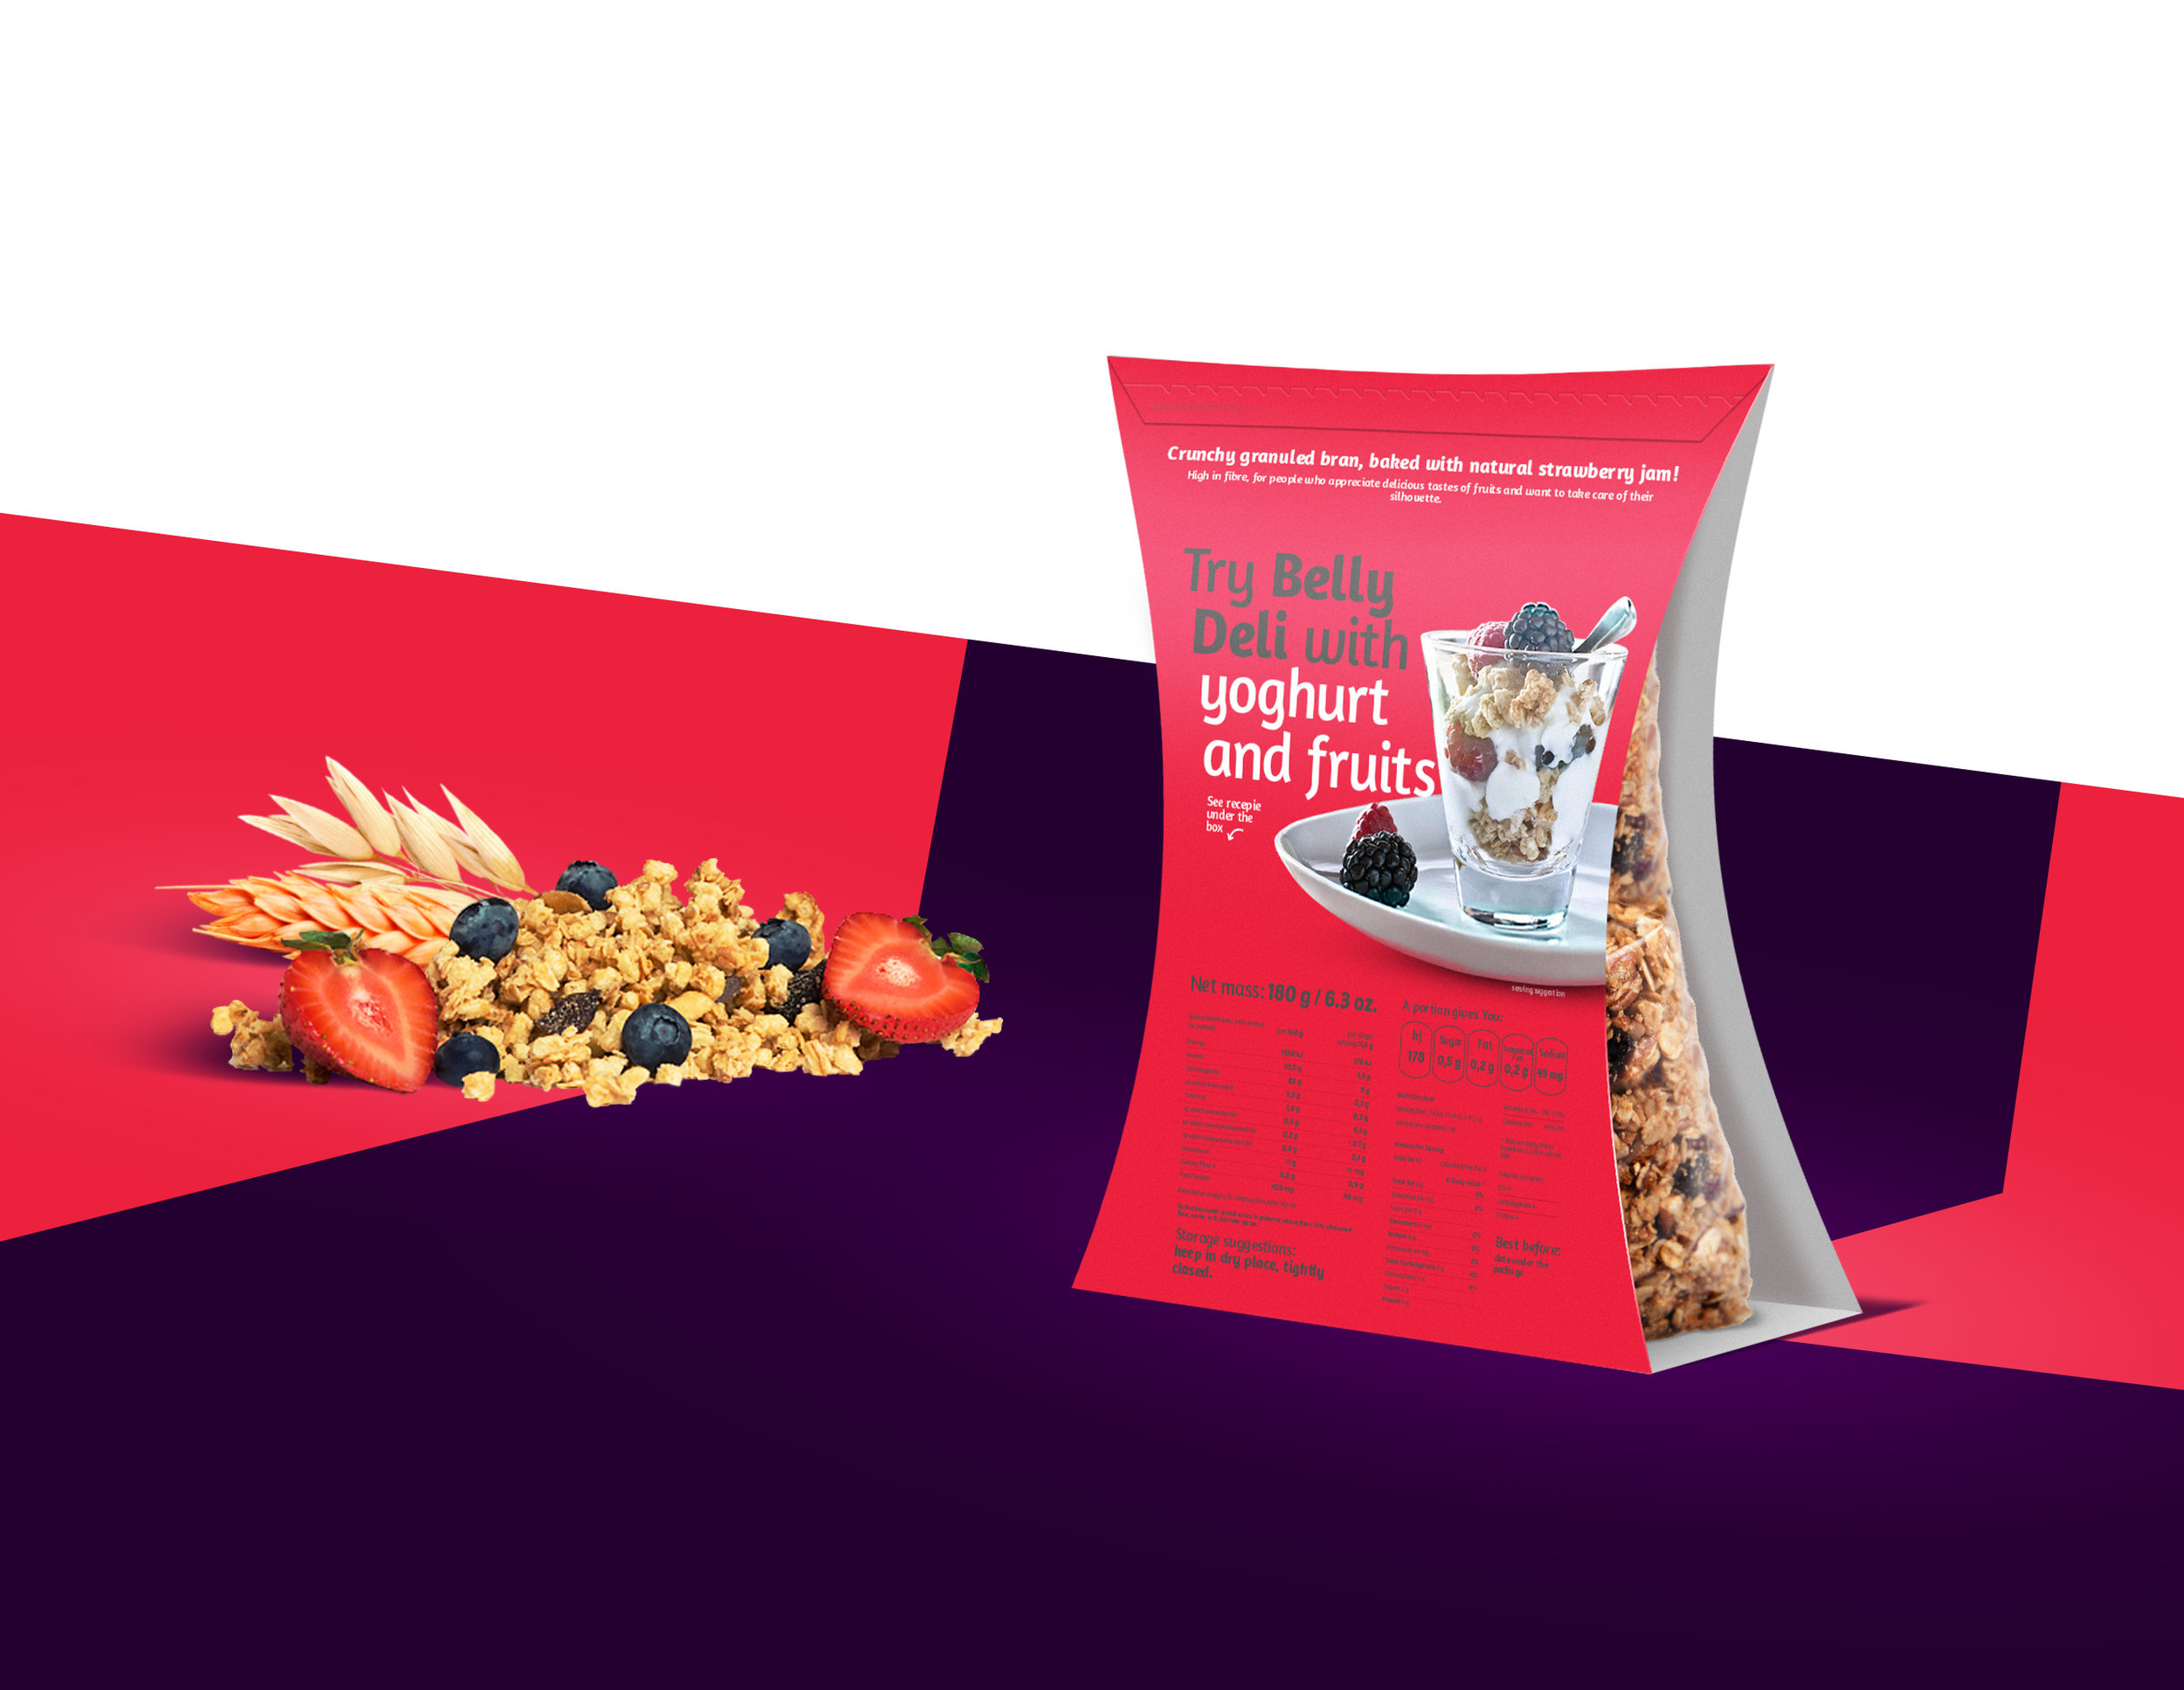 Agency Concept for Polish Major Healthy Food Export Product Line for English Speaking Markets / World Brand & Packaging Design Society